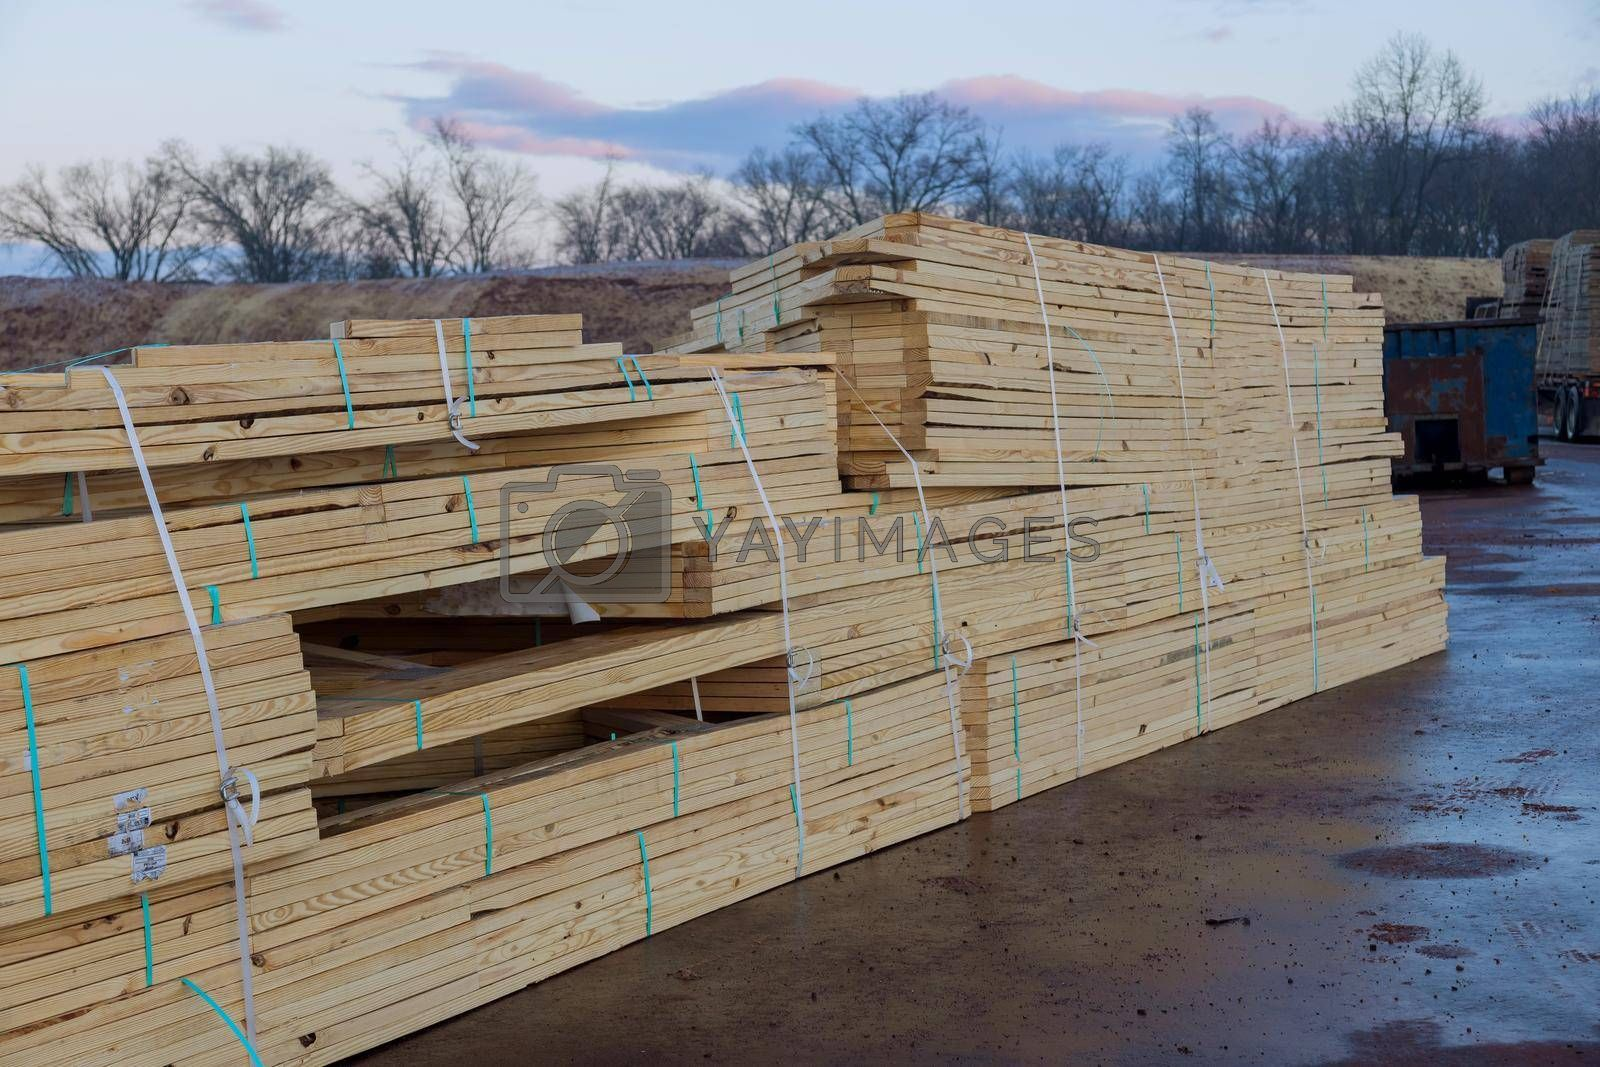 Wood stacked on house building materials from at a construction site.